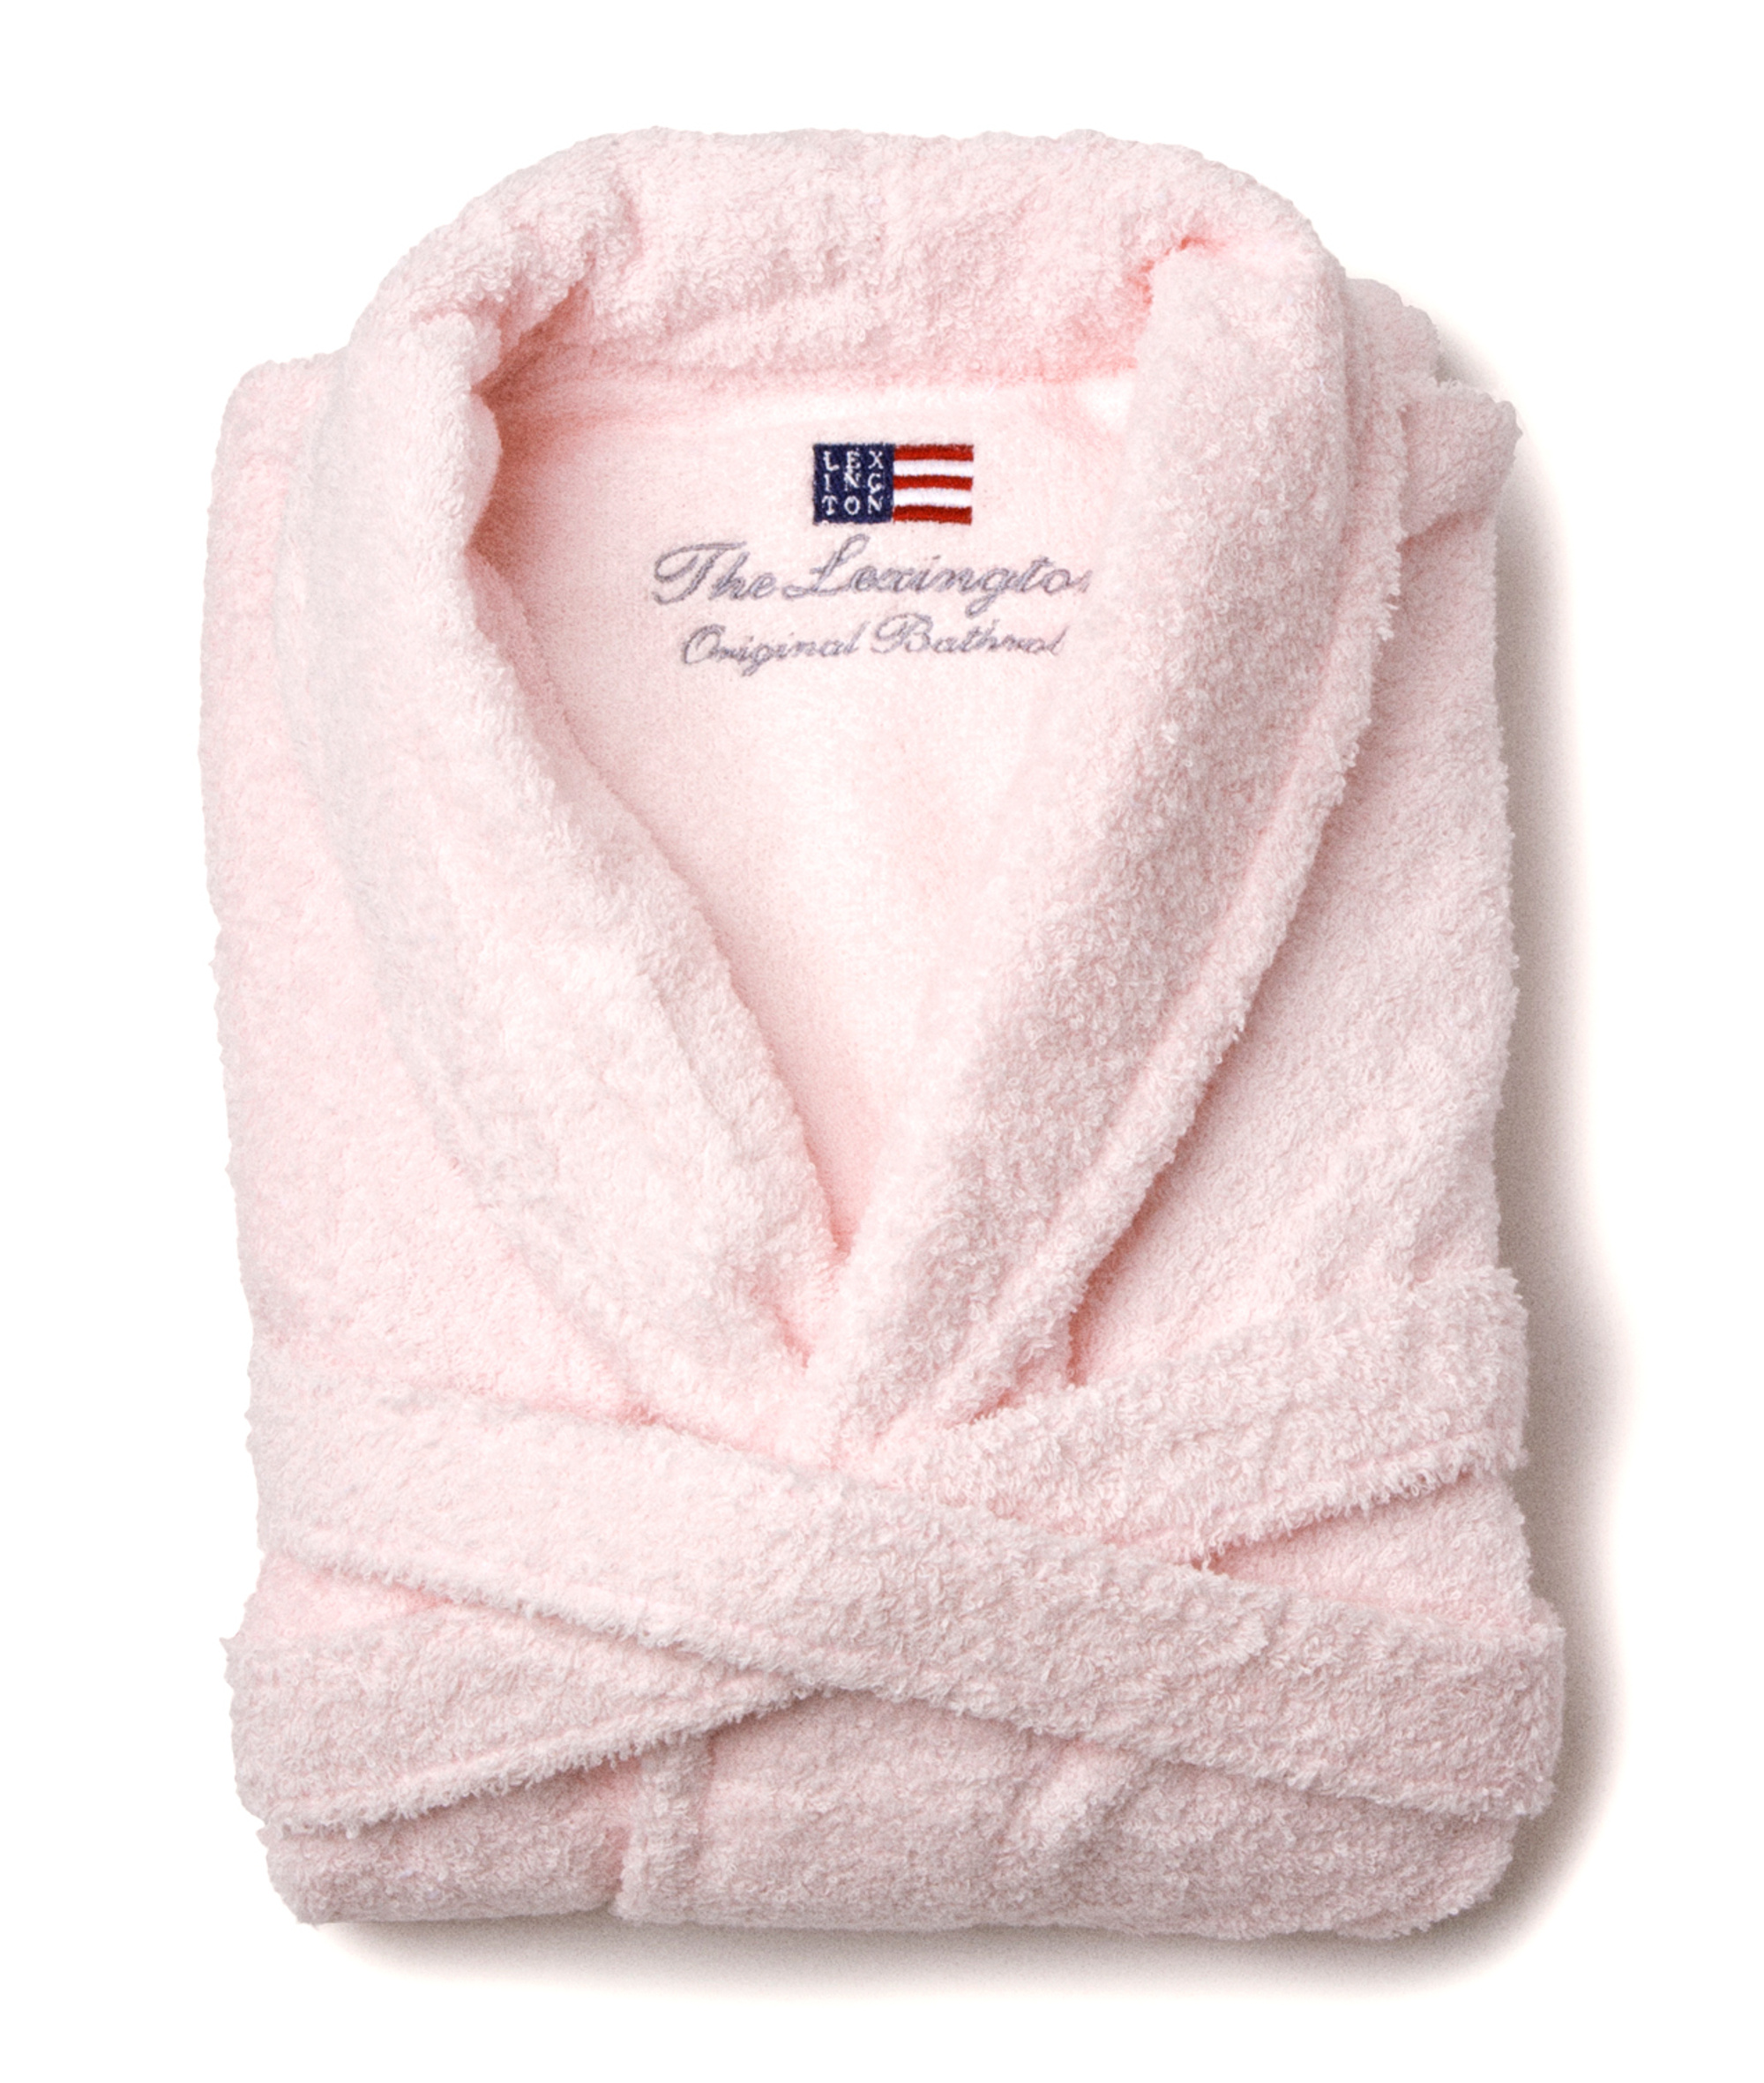 Original Bathrobe, Pink